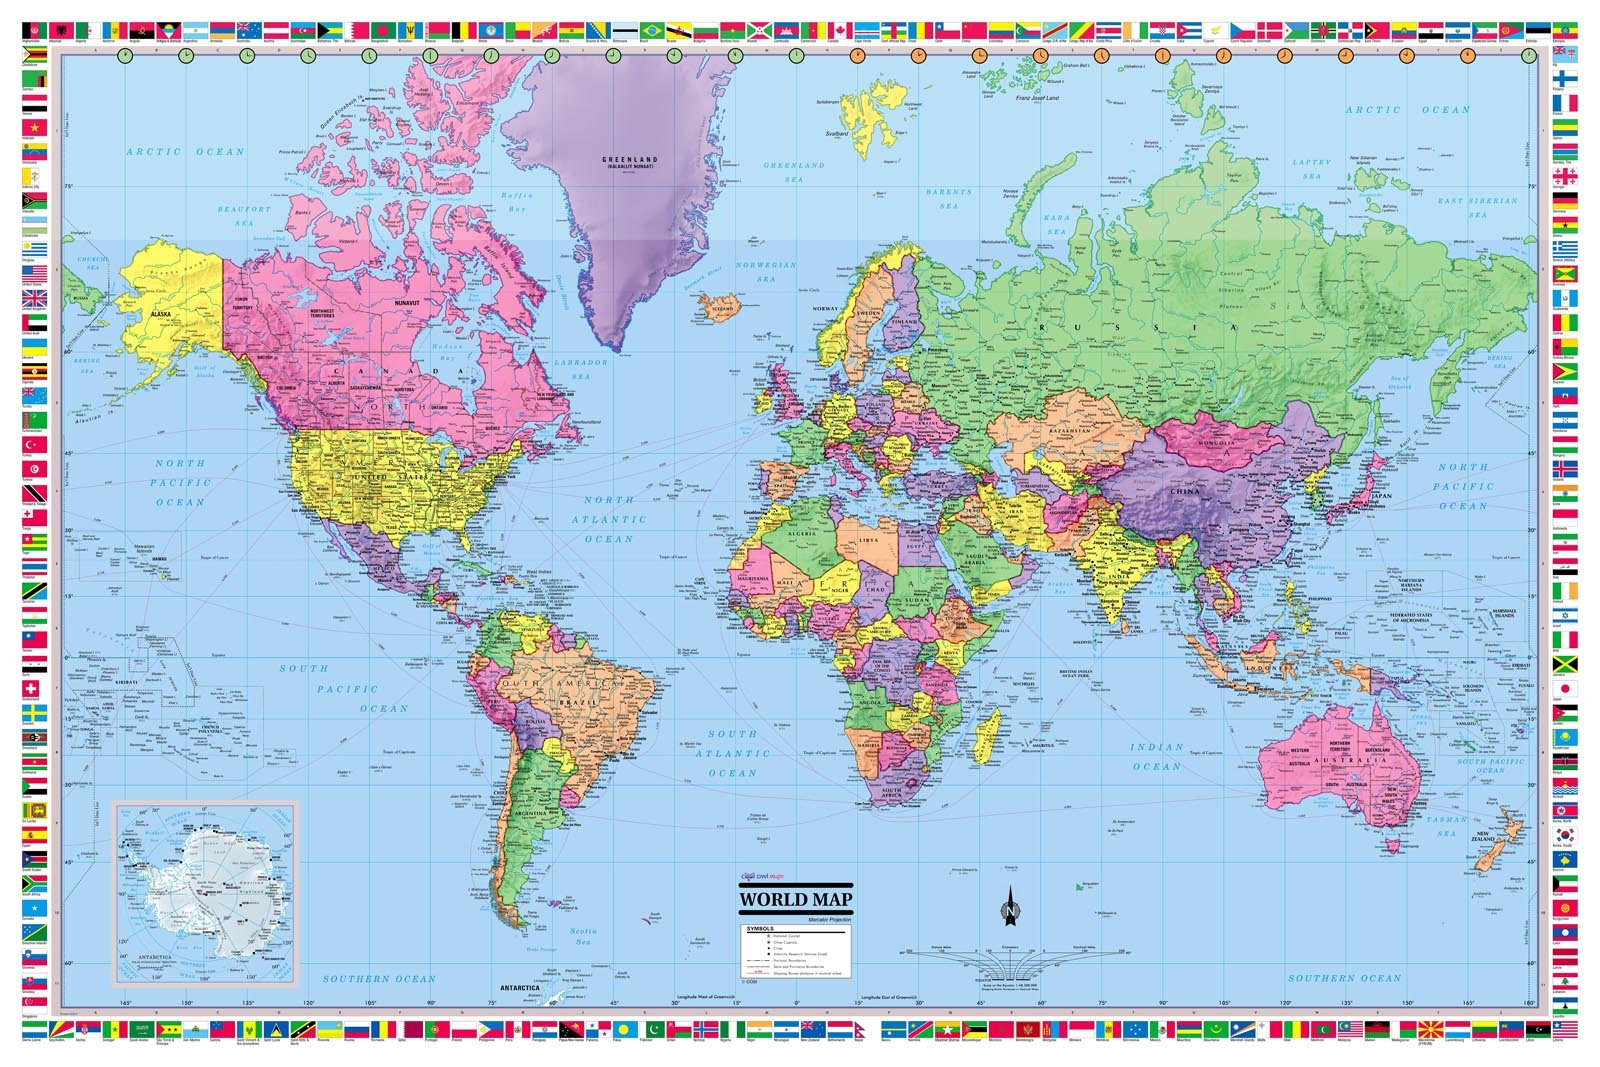 Cool Owl Maps World Wall Map Poster 36x24 Rolled Laminated Personilized 2018